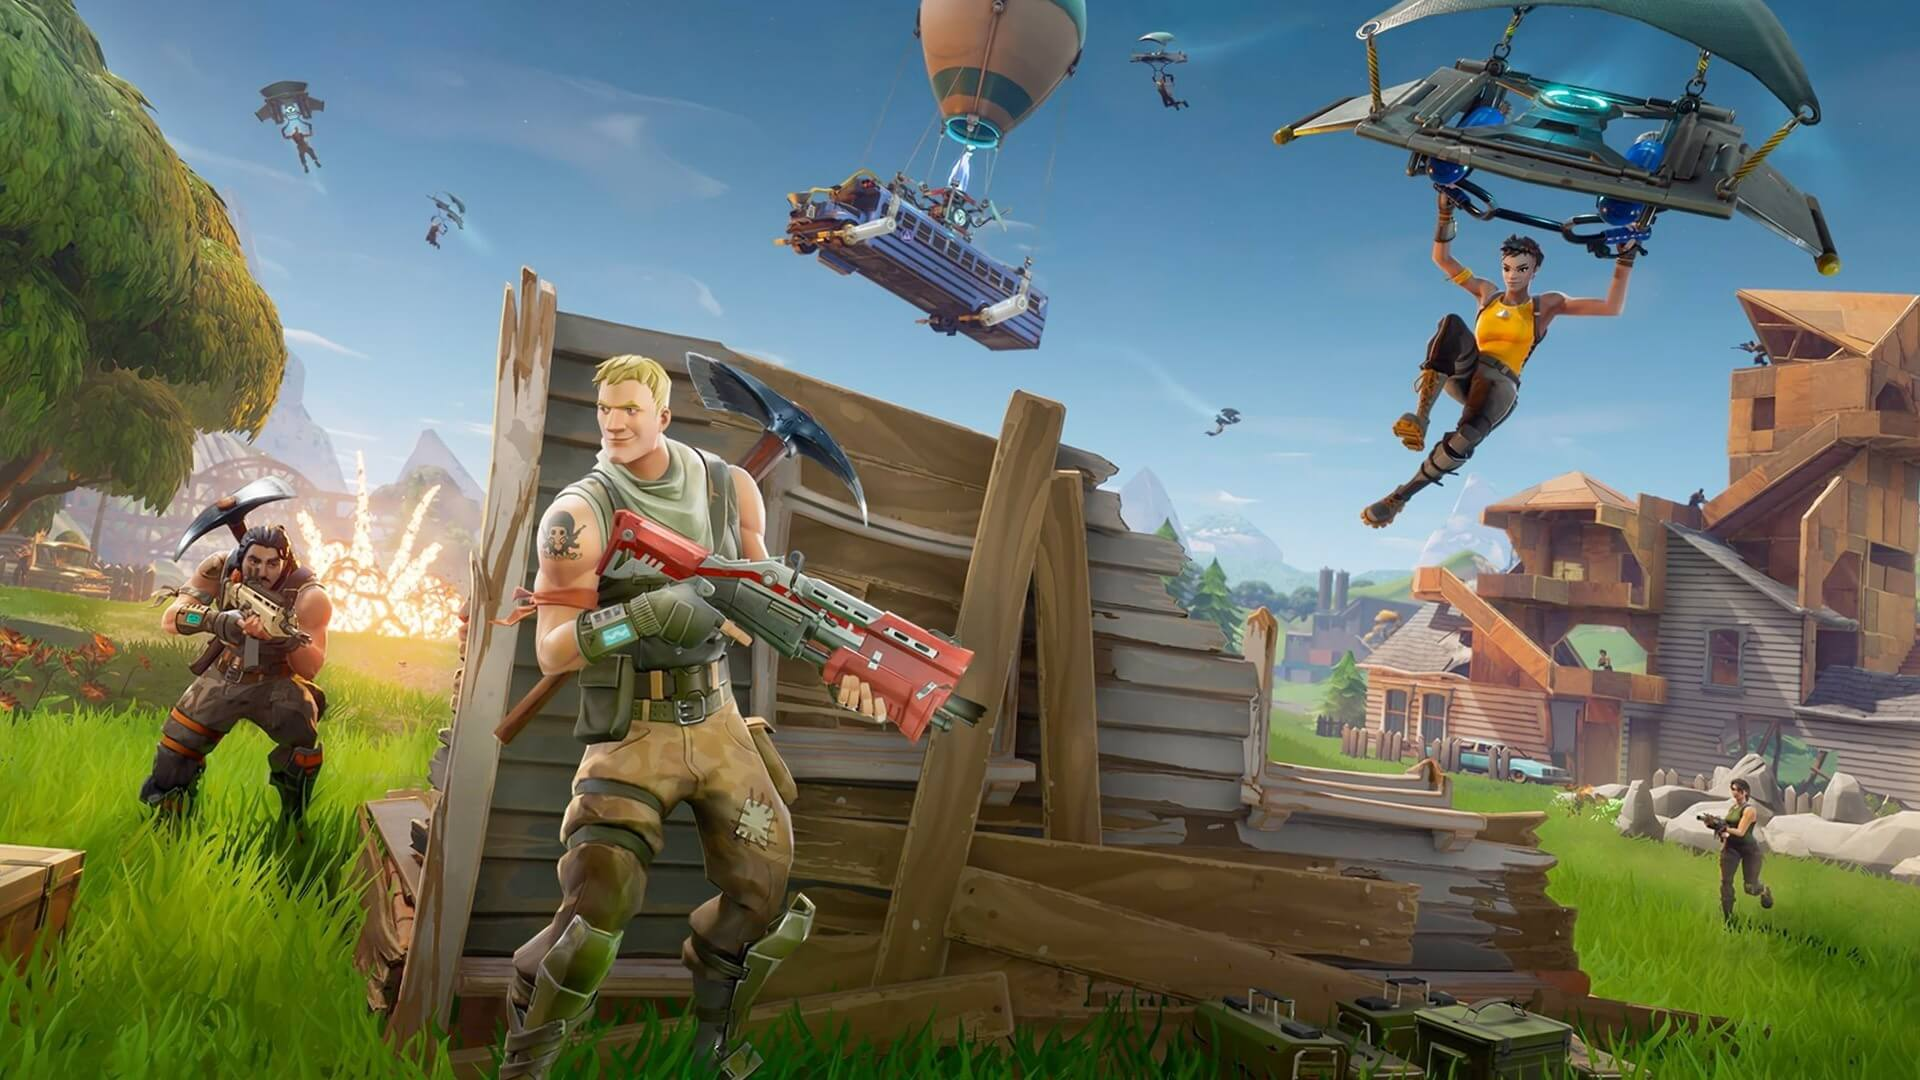 Fortnite toernooi of event organiseren? WePlay Esports!